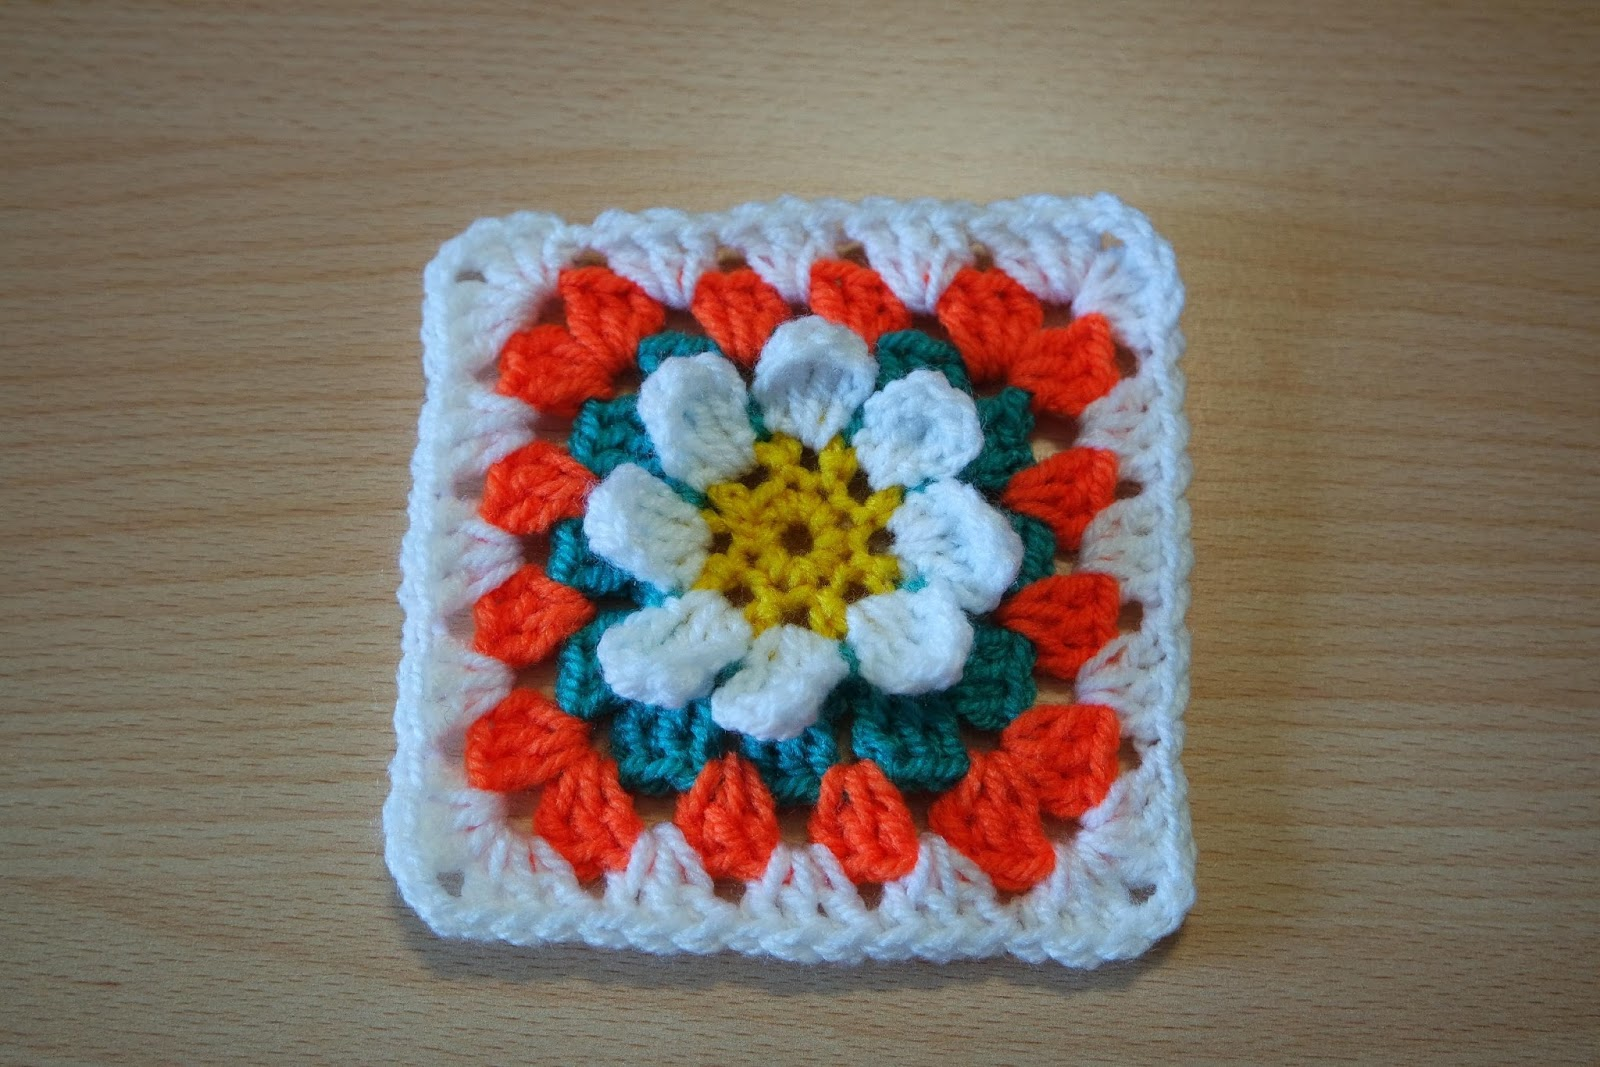 Crochet Flower Pattern Blanket : Free crochet patterns and video tutorials: Crochet pattern ...